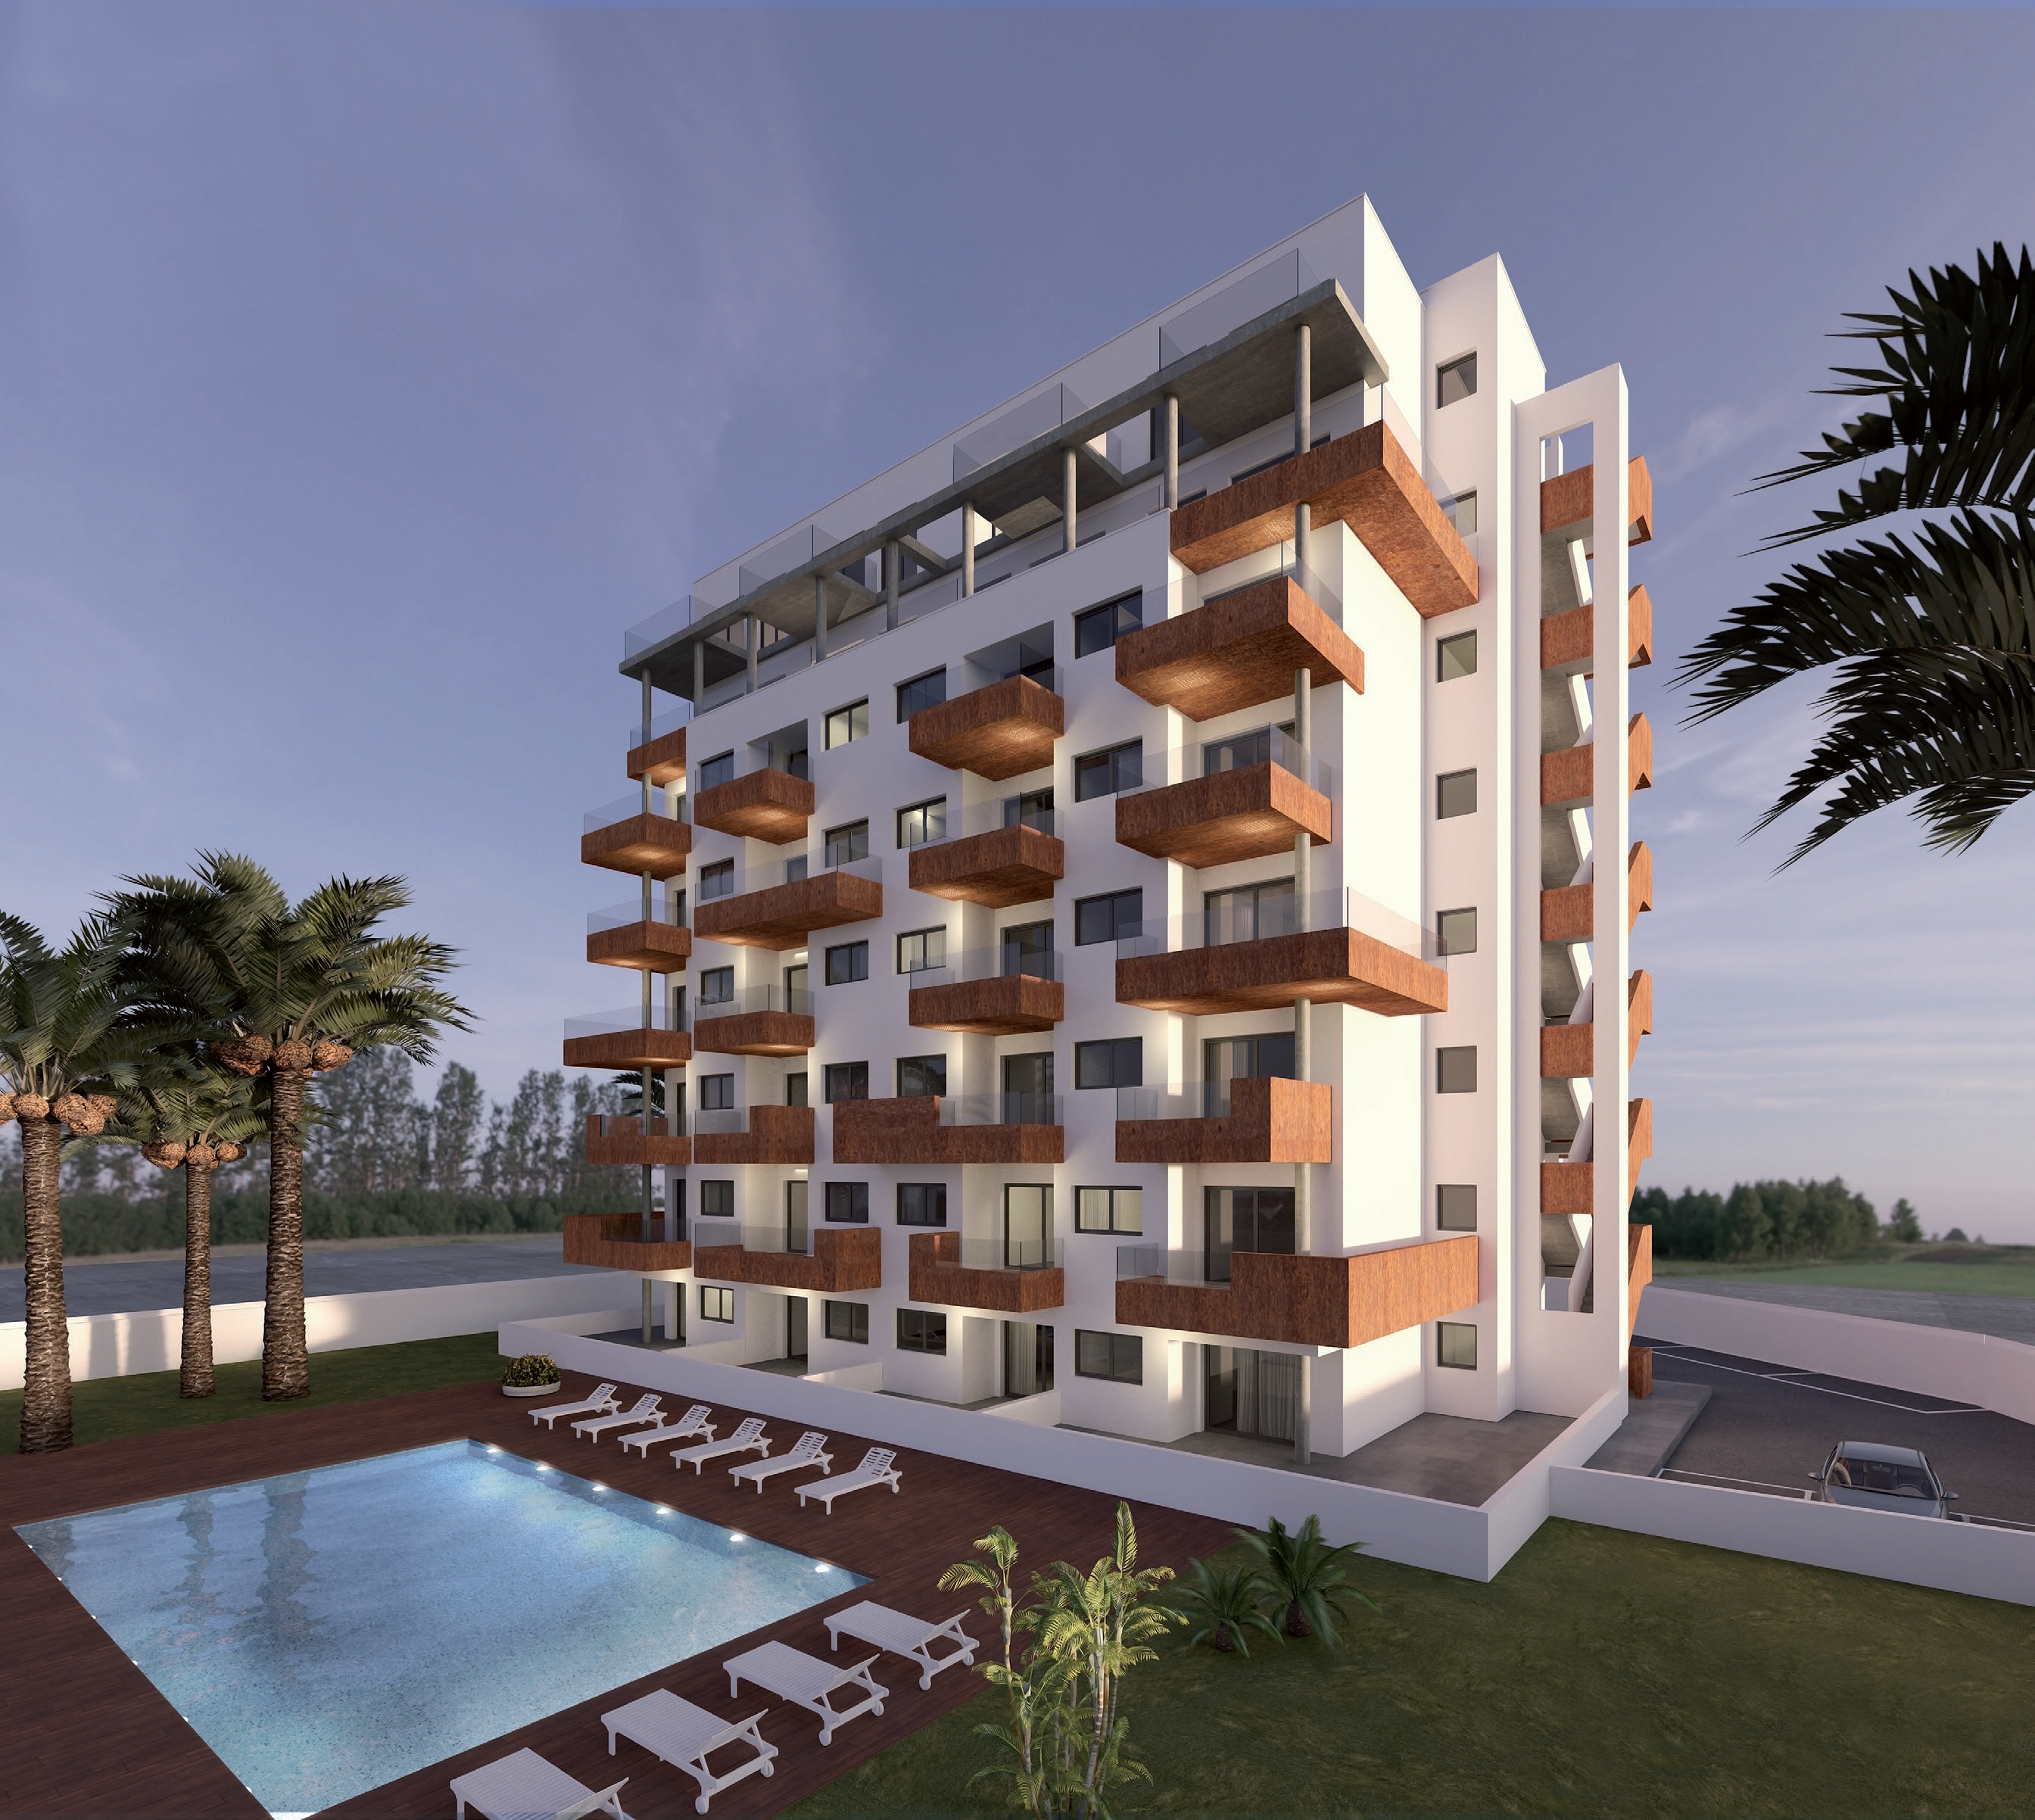 2 bedroom apartment For Sale in Guardamar - Main Image